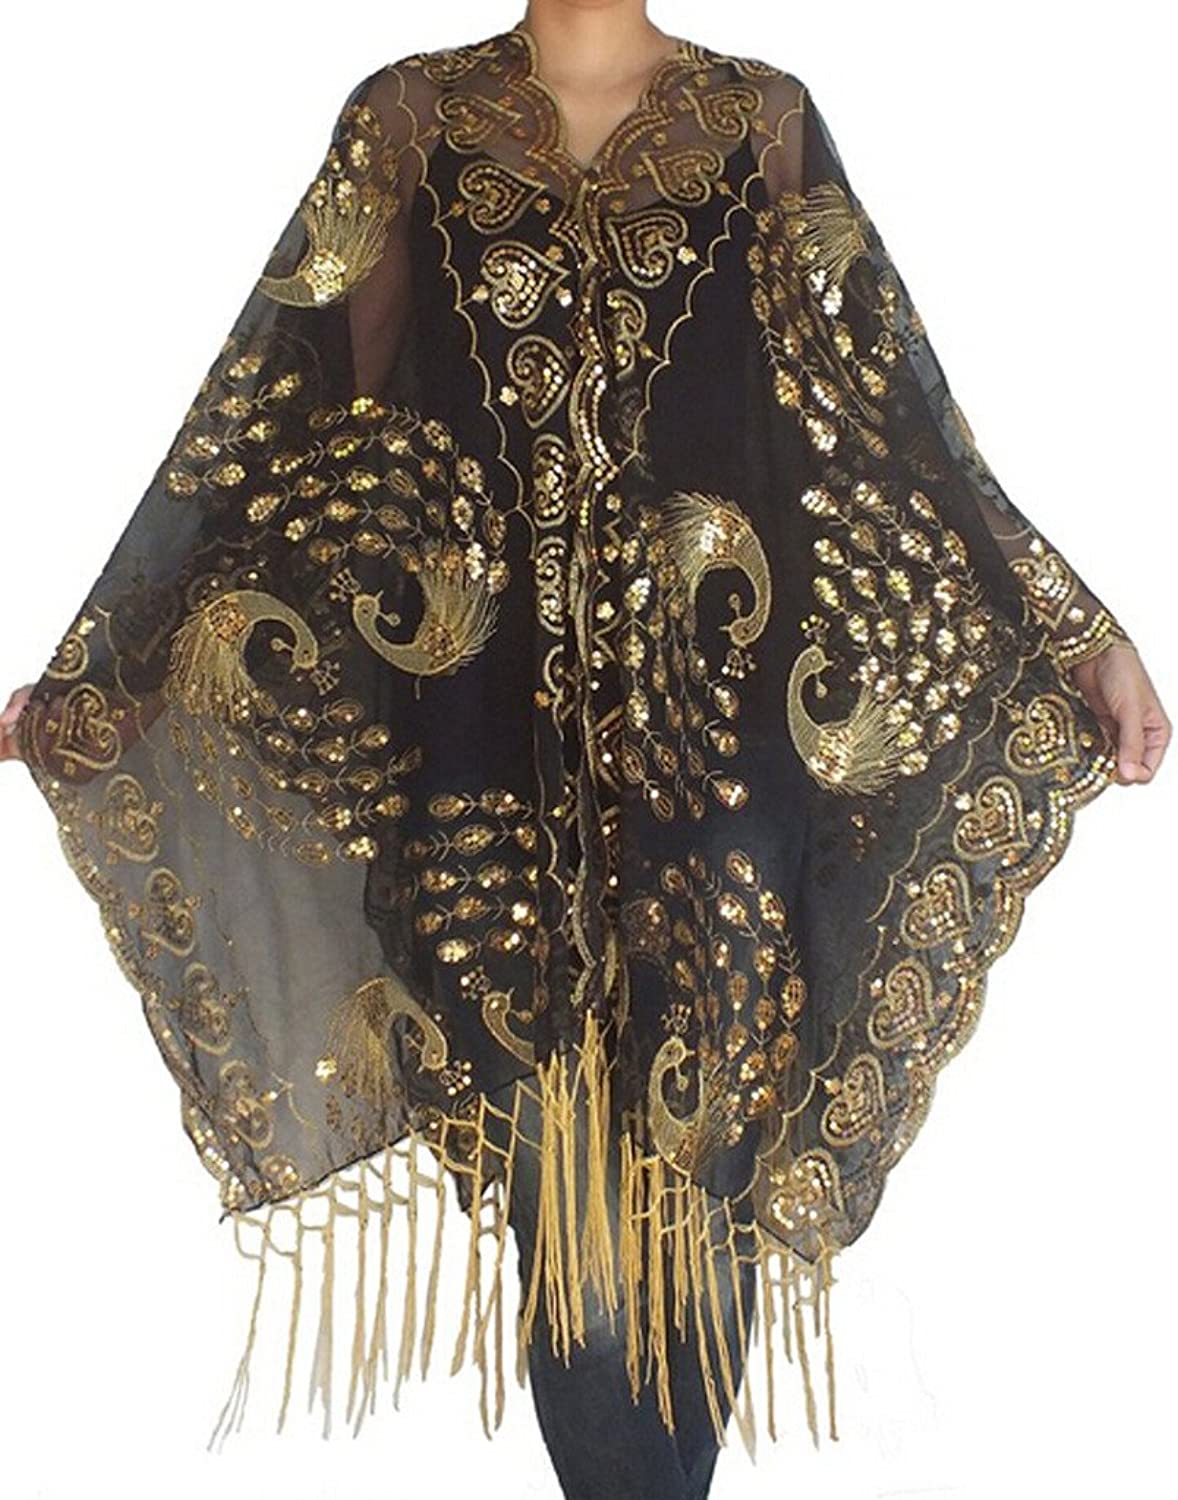 Vintage Inspired Scarves for Winter  Peacock Phoenix Embroidery Sequins Wedding Scarf Shawls $19.99 AT vintagedancer.com